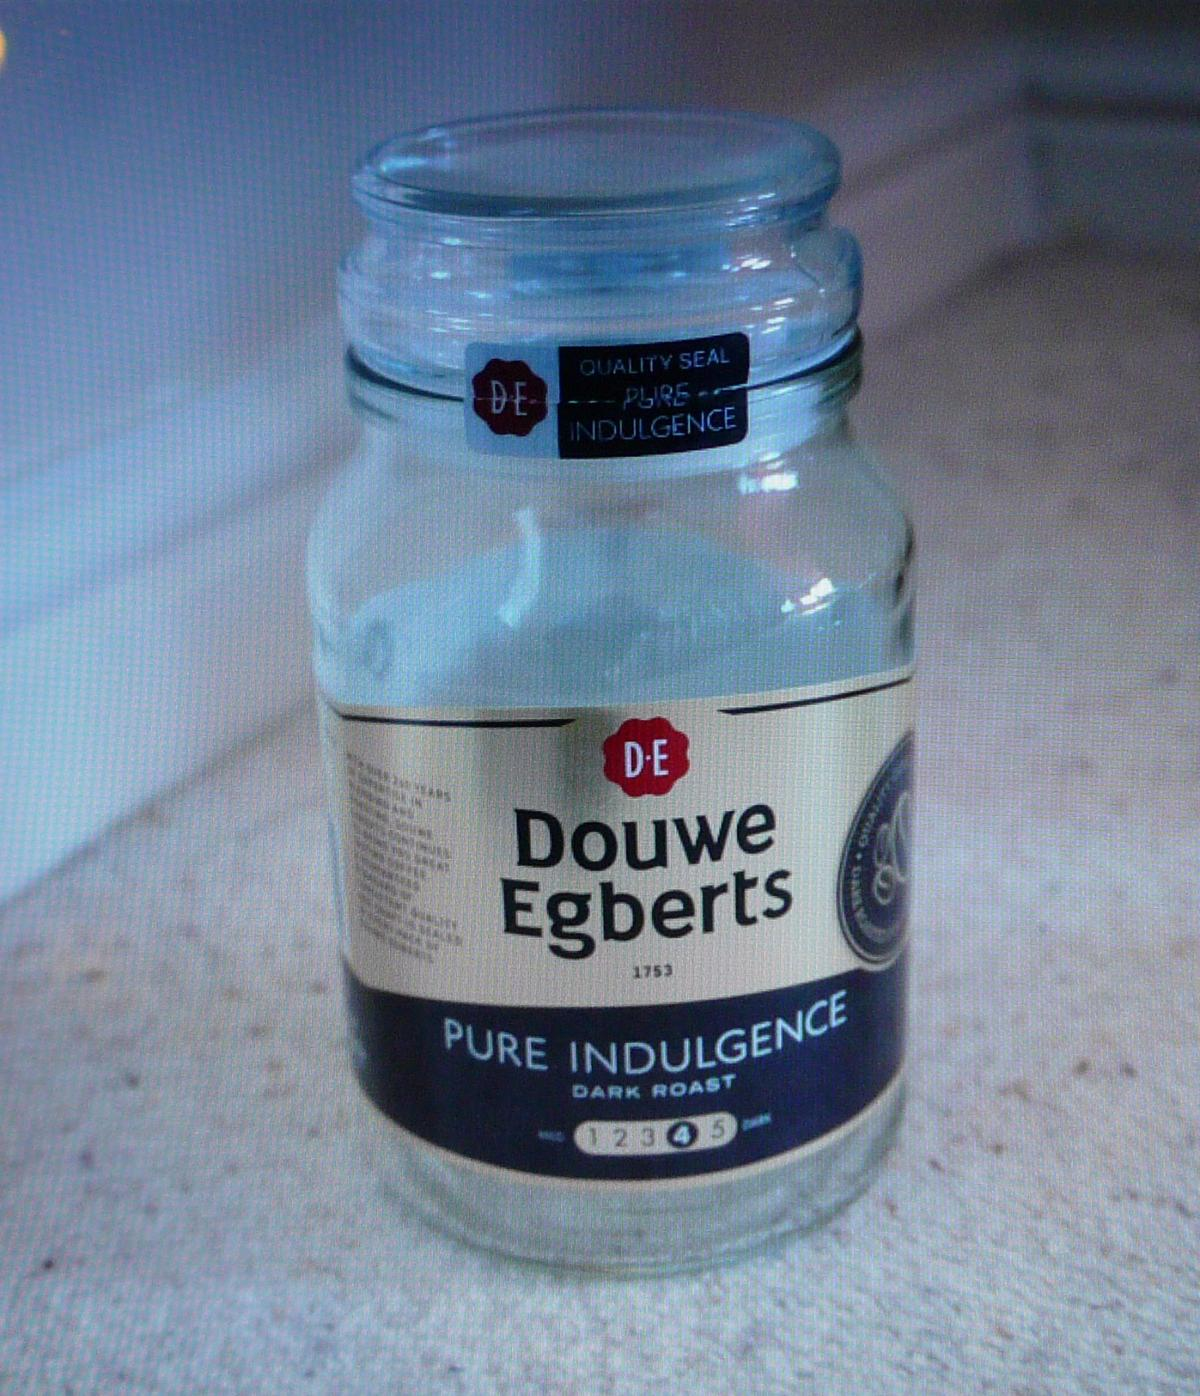 7 X 190g Douwe Egberts Coffee Jars Empty In B97 Redditch For 6 00 For Sale Shpock